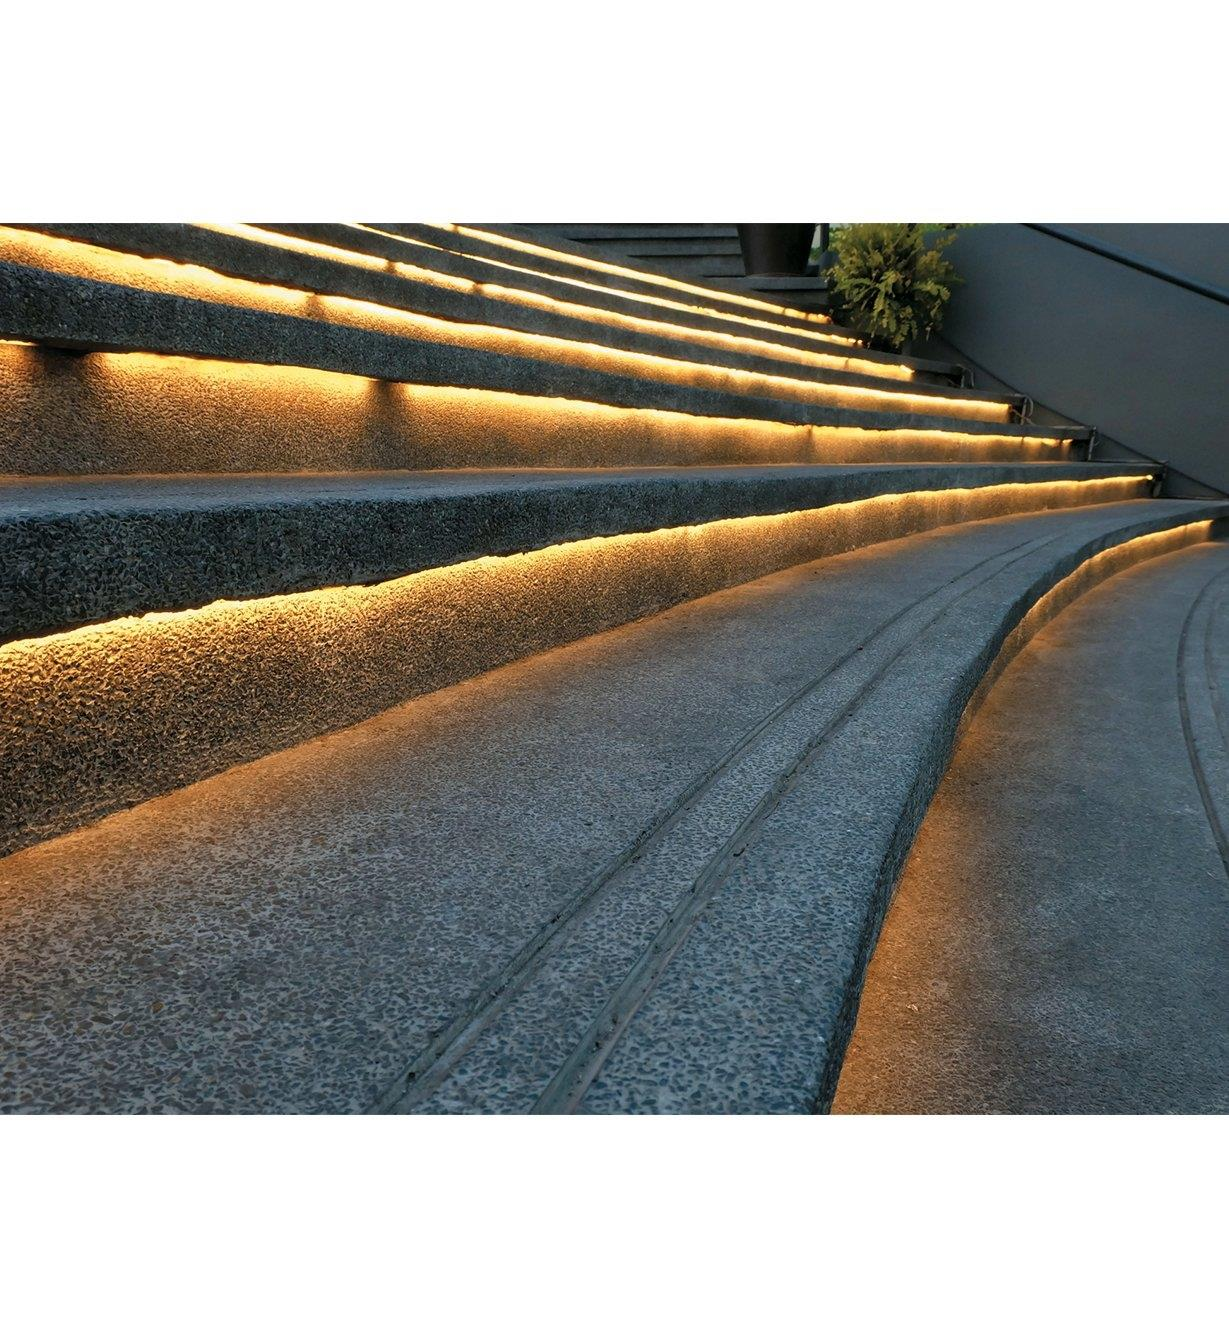 Example of LED lights installed under concrete steps